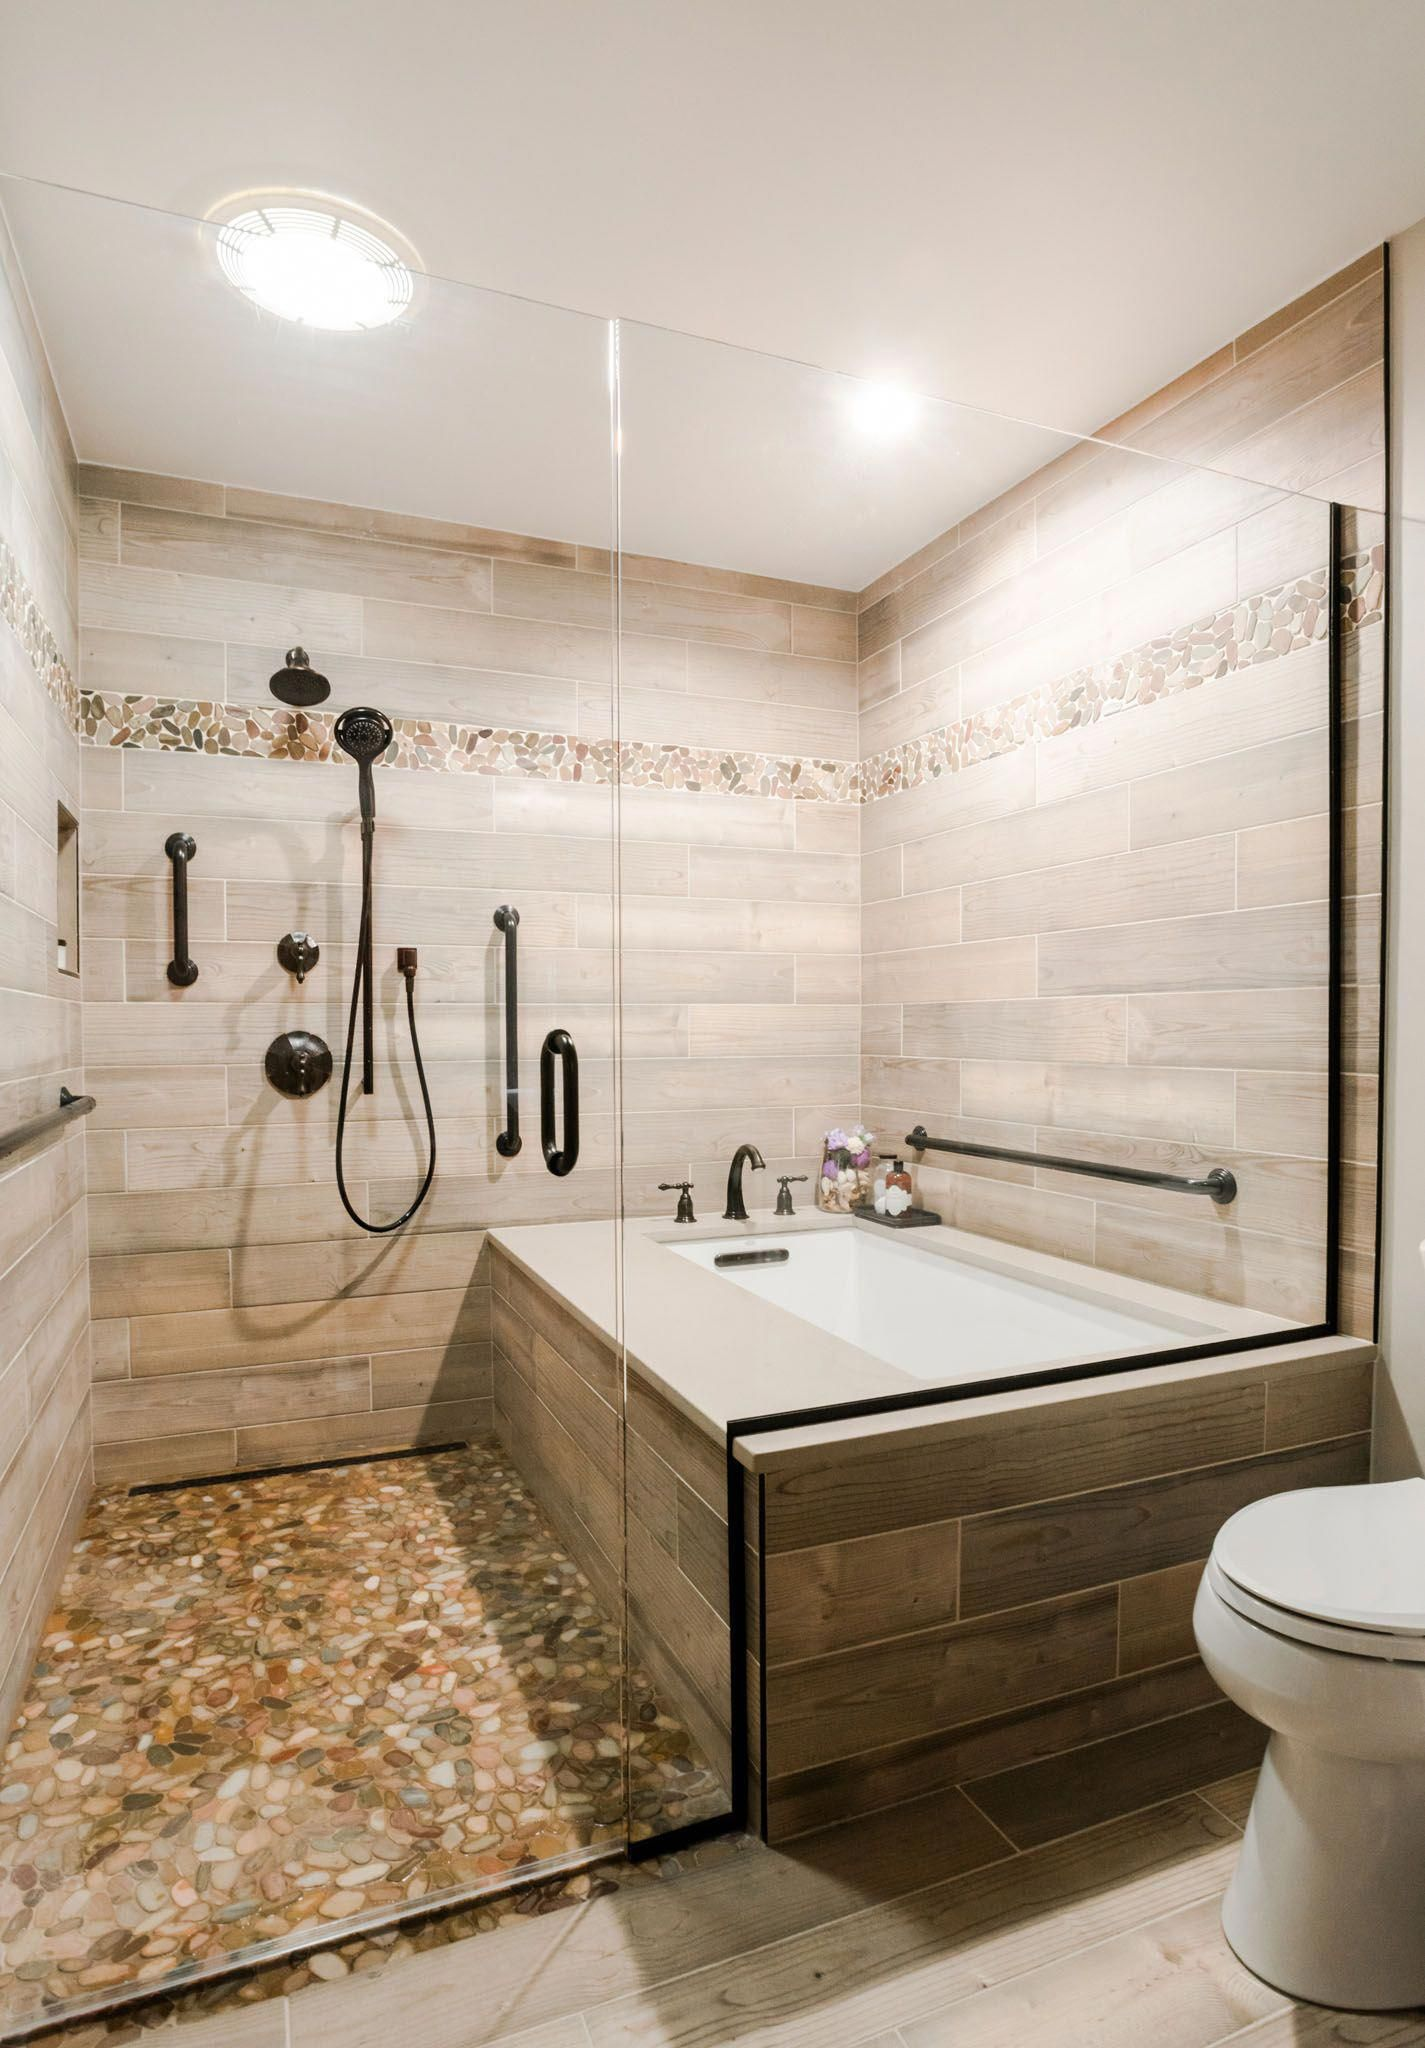 Brothers Services Is Maryland S Full Service Remodeler And Contractor Bathroom Remodel Master Bathtub Remodel Diy Bathroom Remodel [ jpg ]